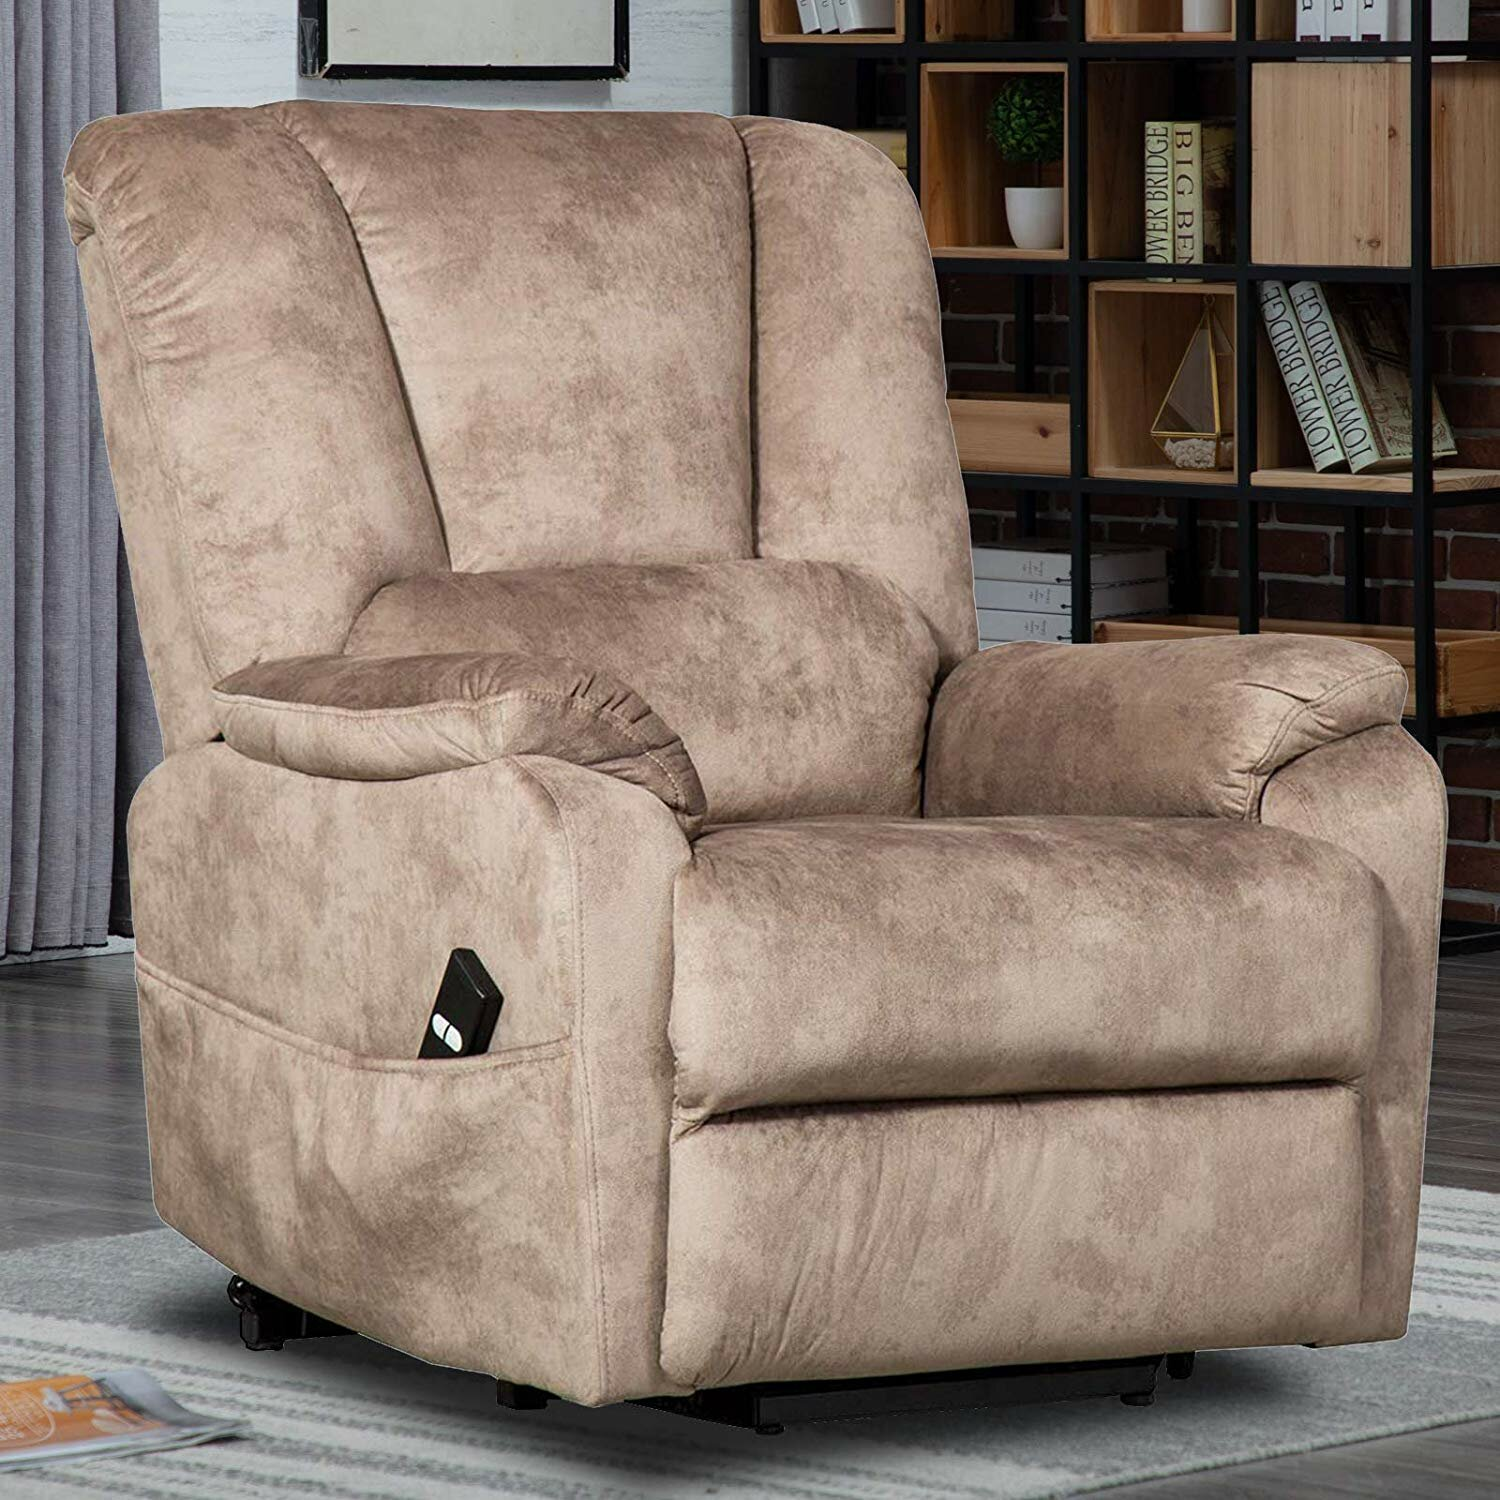 Recliner Lift Chairs You'll Love in 2020 | Wayfair